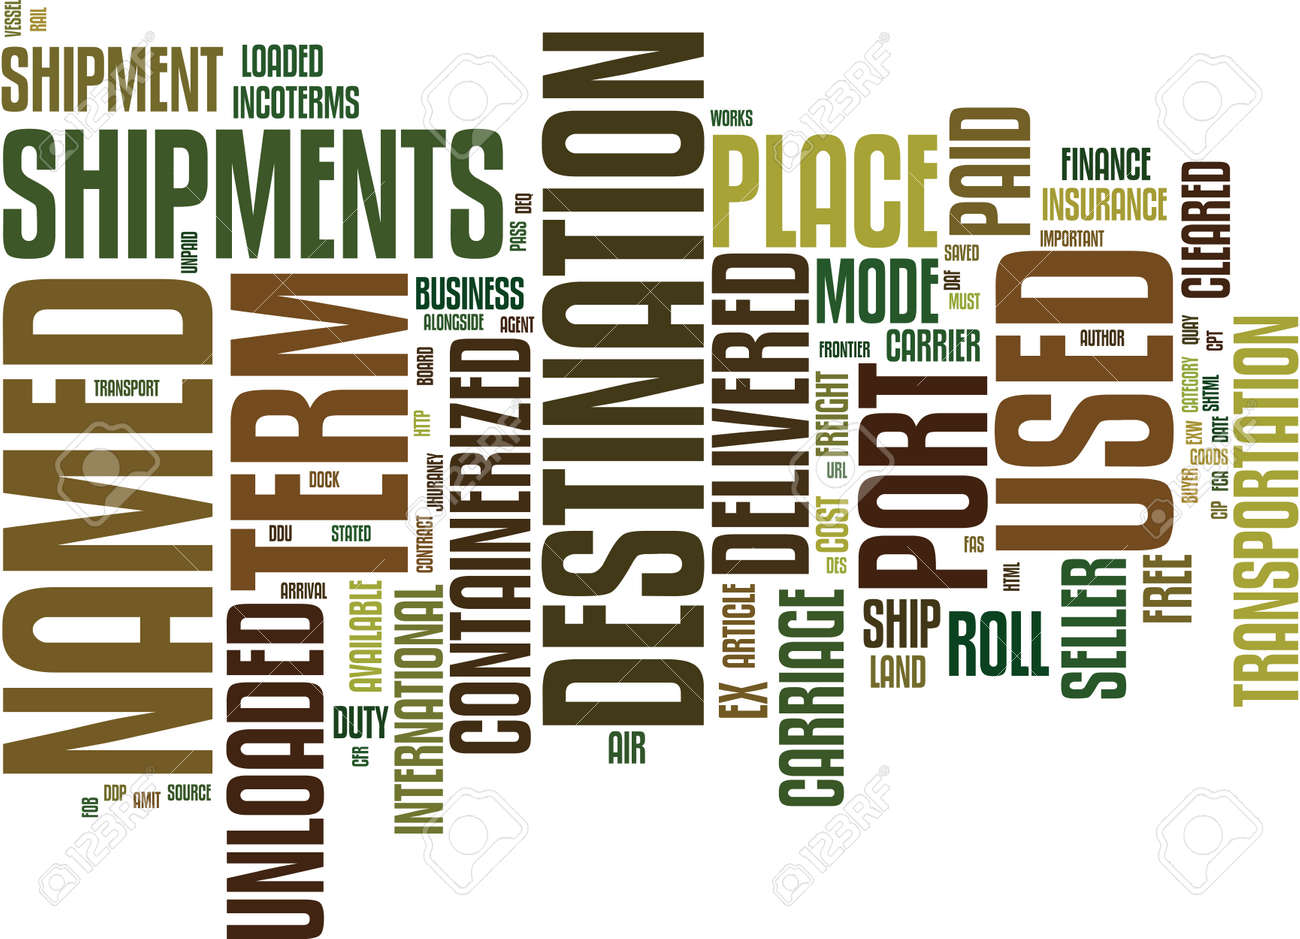 THE INCOTERMS Text Background Word Cloud Concept - 82595682